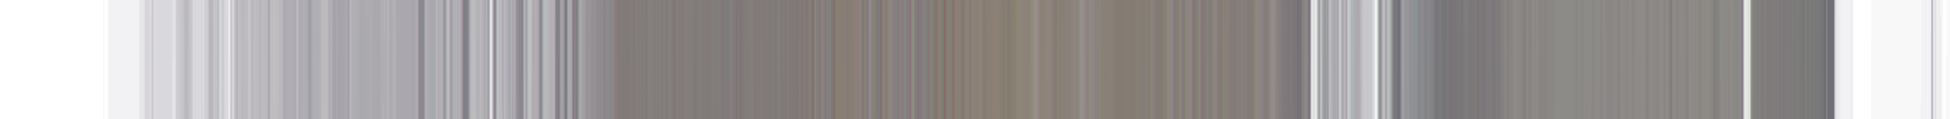 Solarsystemscope texture 2k saturn ring alpha.png